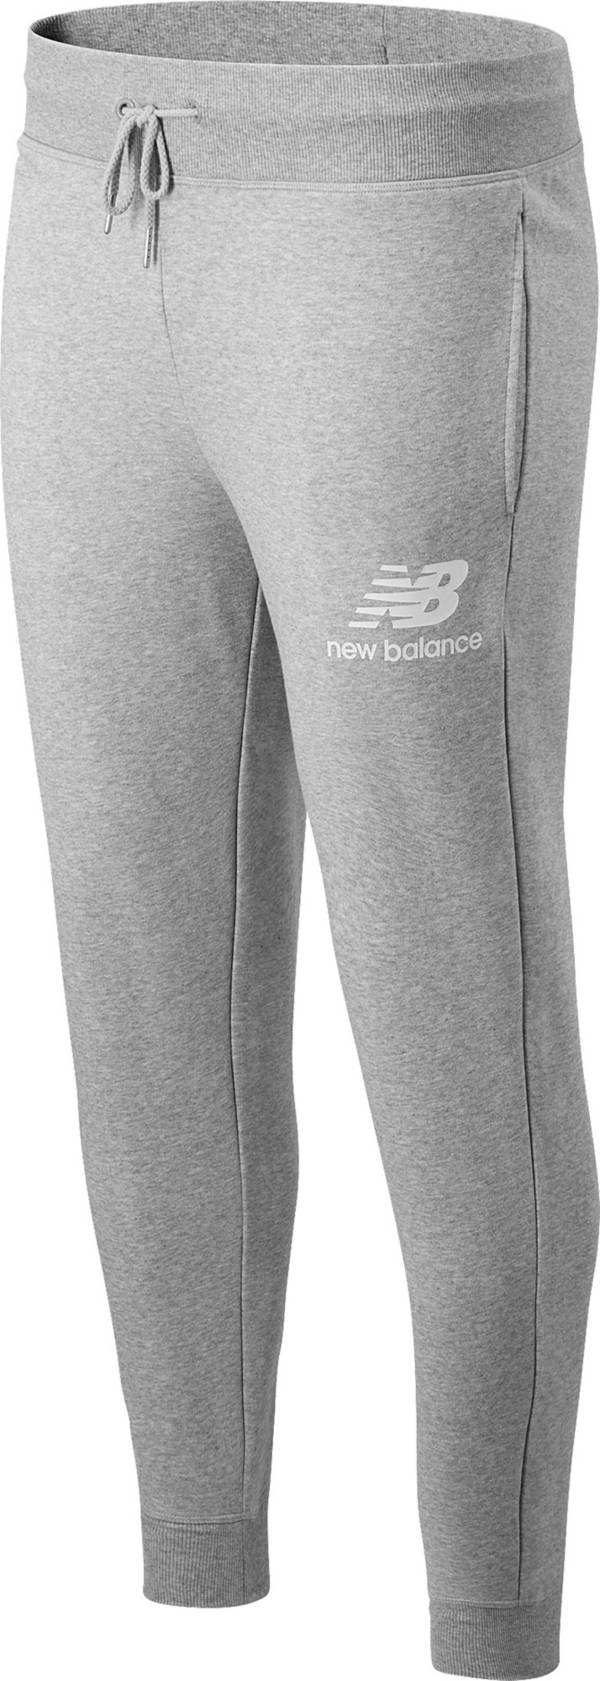 New Balance Men's Essentials Stacked Logo Sweatpants product image